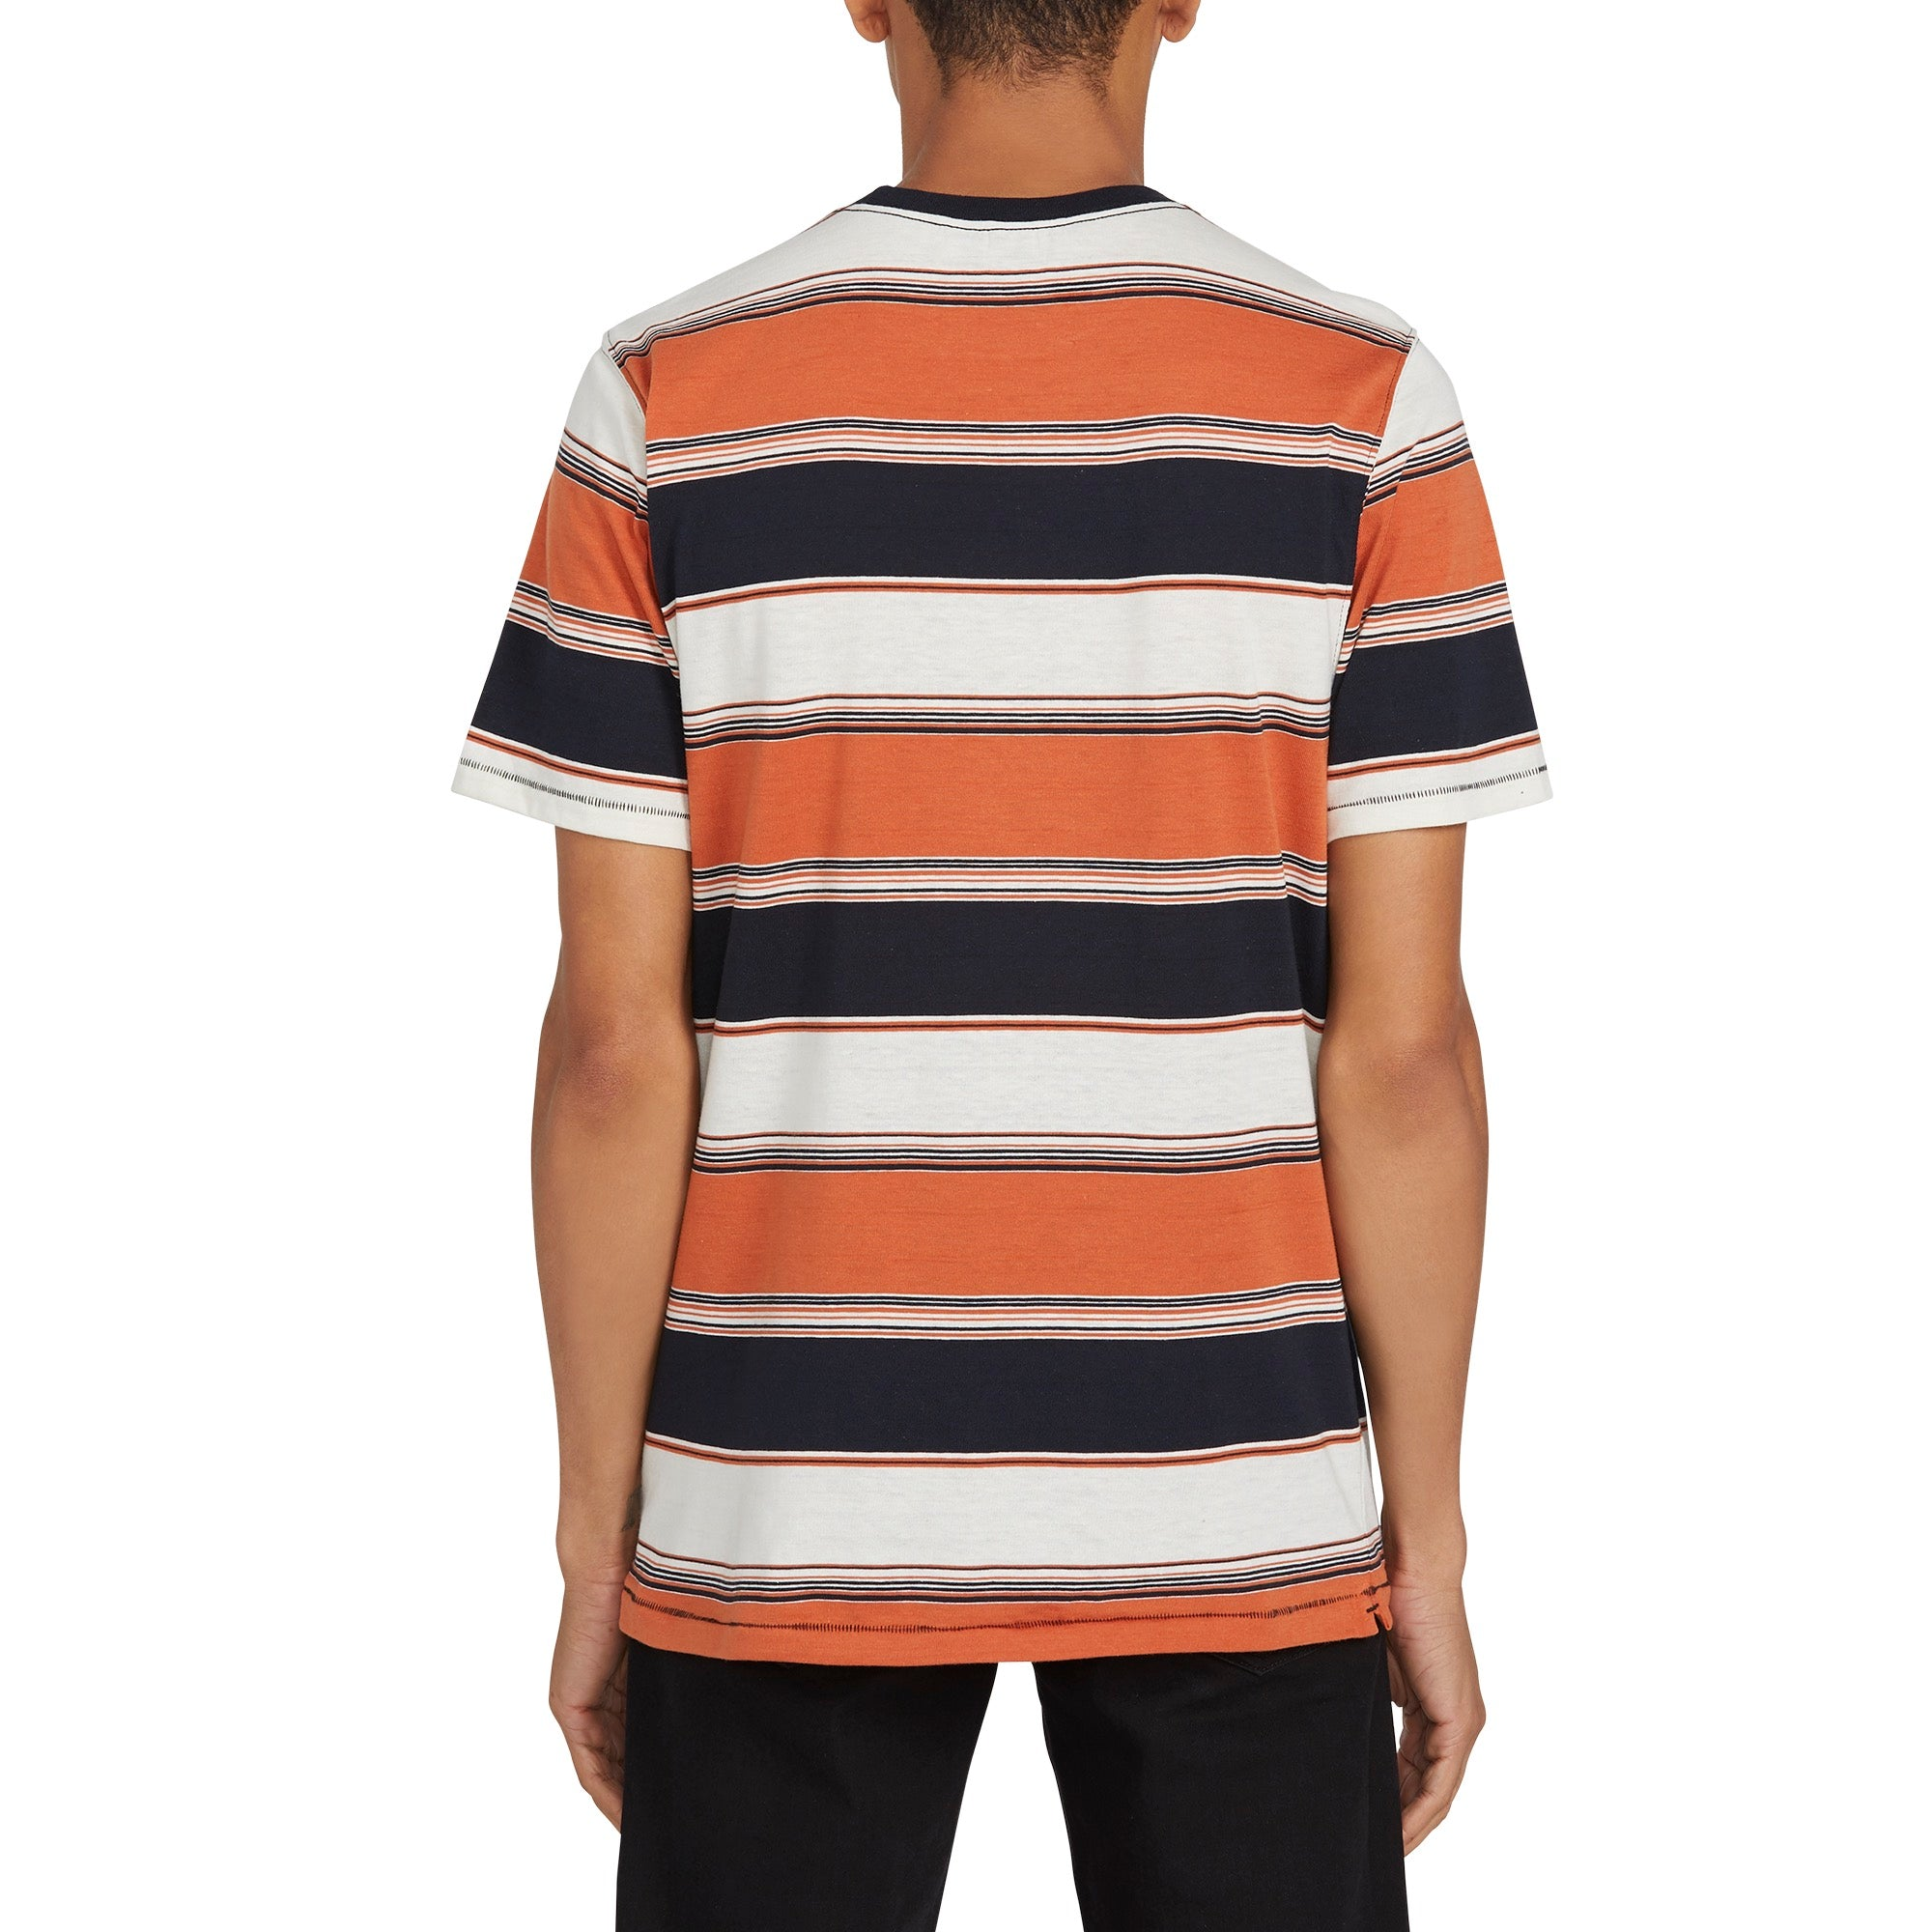 Volcom Chromatic Short Sleeve Shirt - 88 Gear